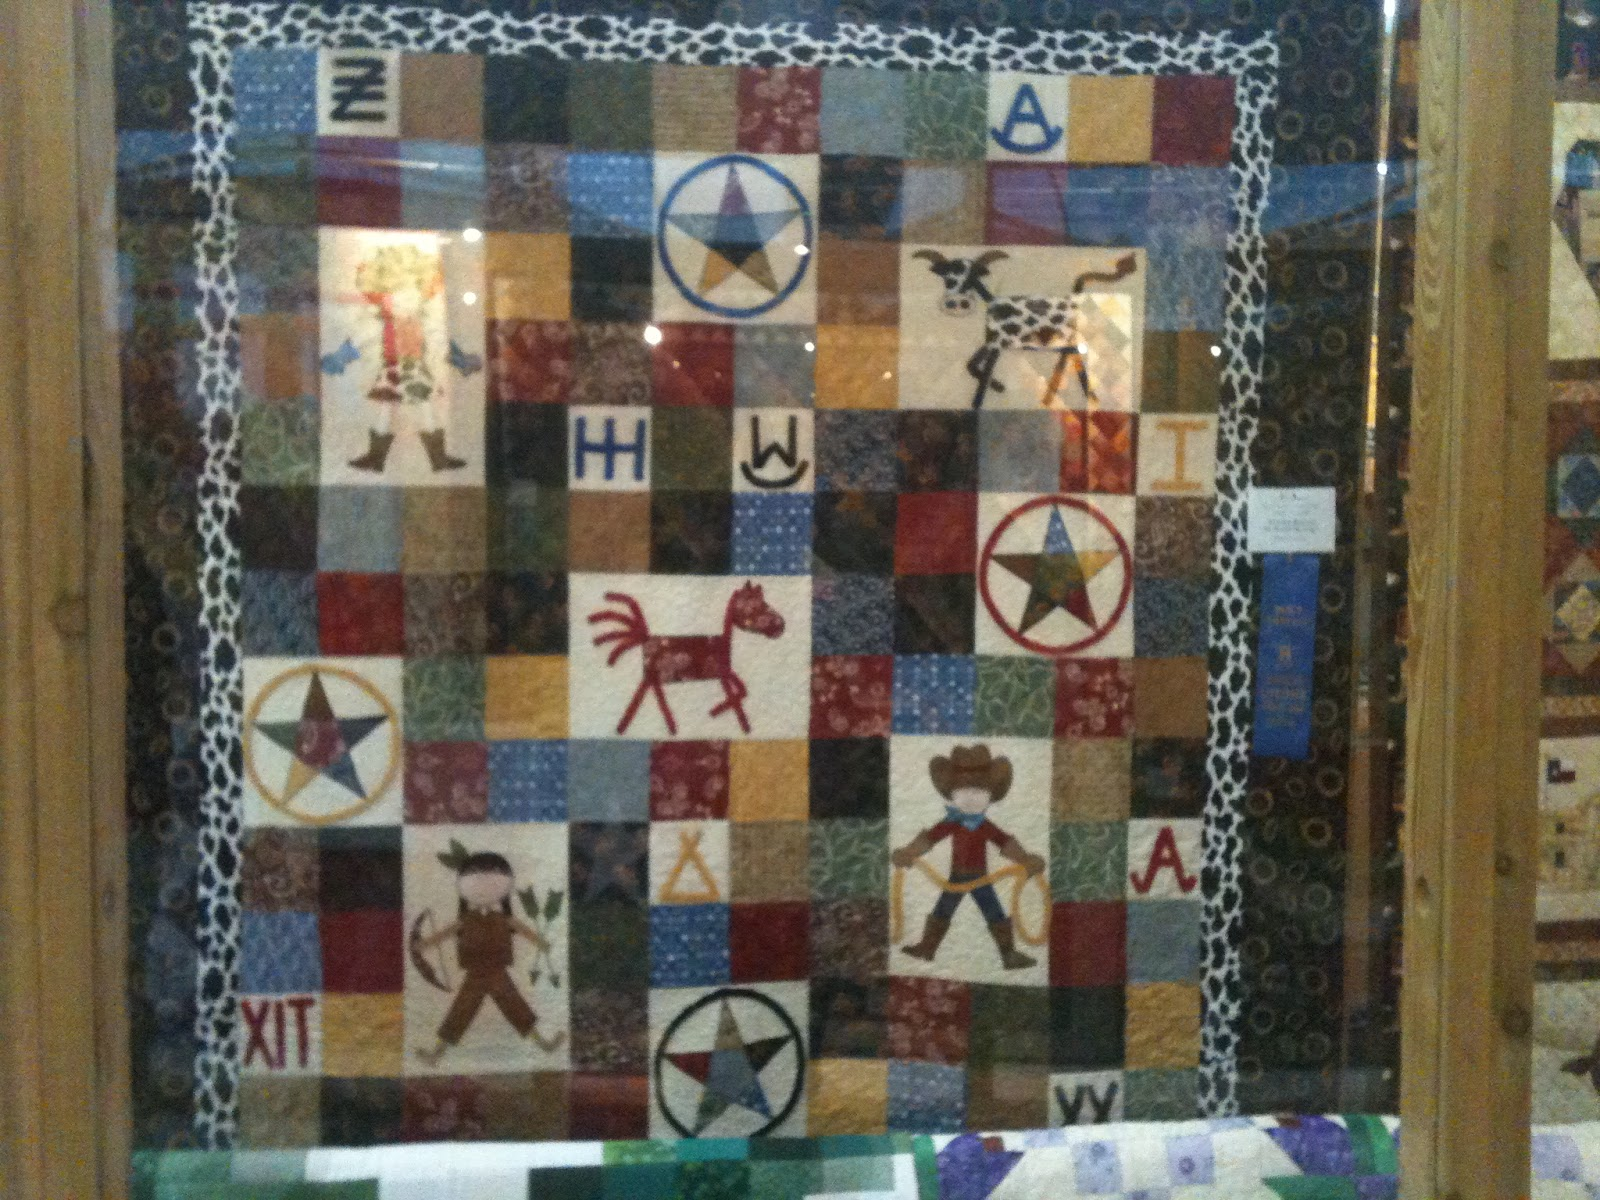 MINI QUILT SHOW FROM HOUSTON LIVESTOCK SHOW | The Quilting Queen ... : quilting houston - Adamdwight.com